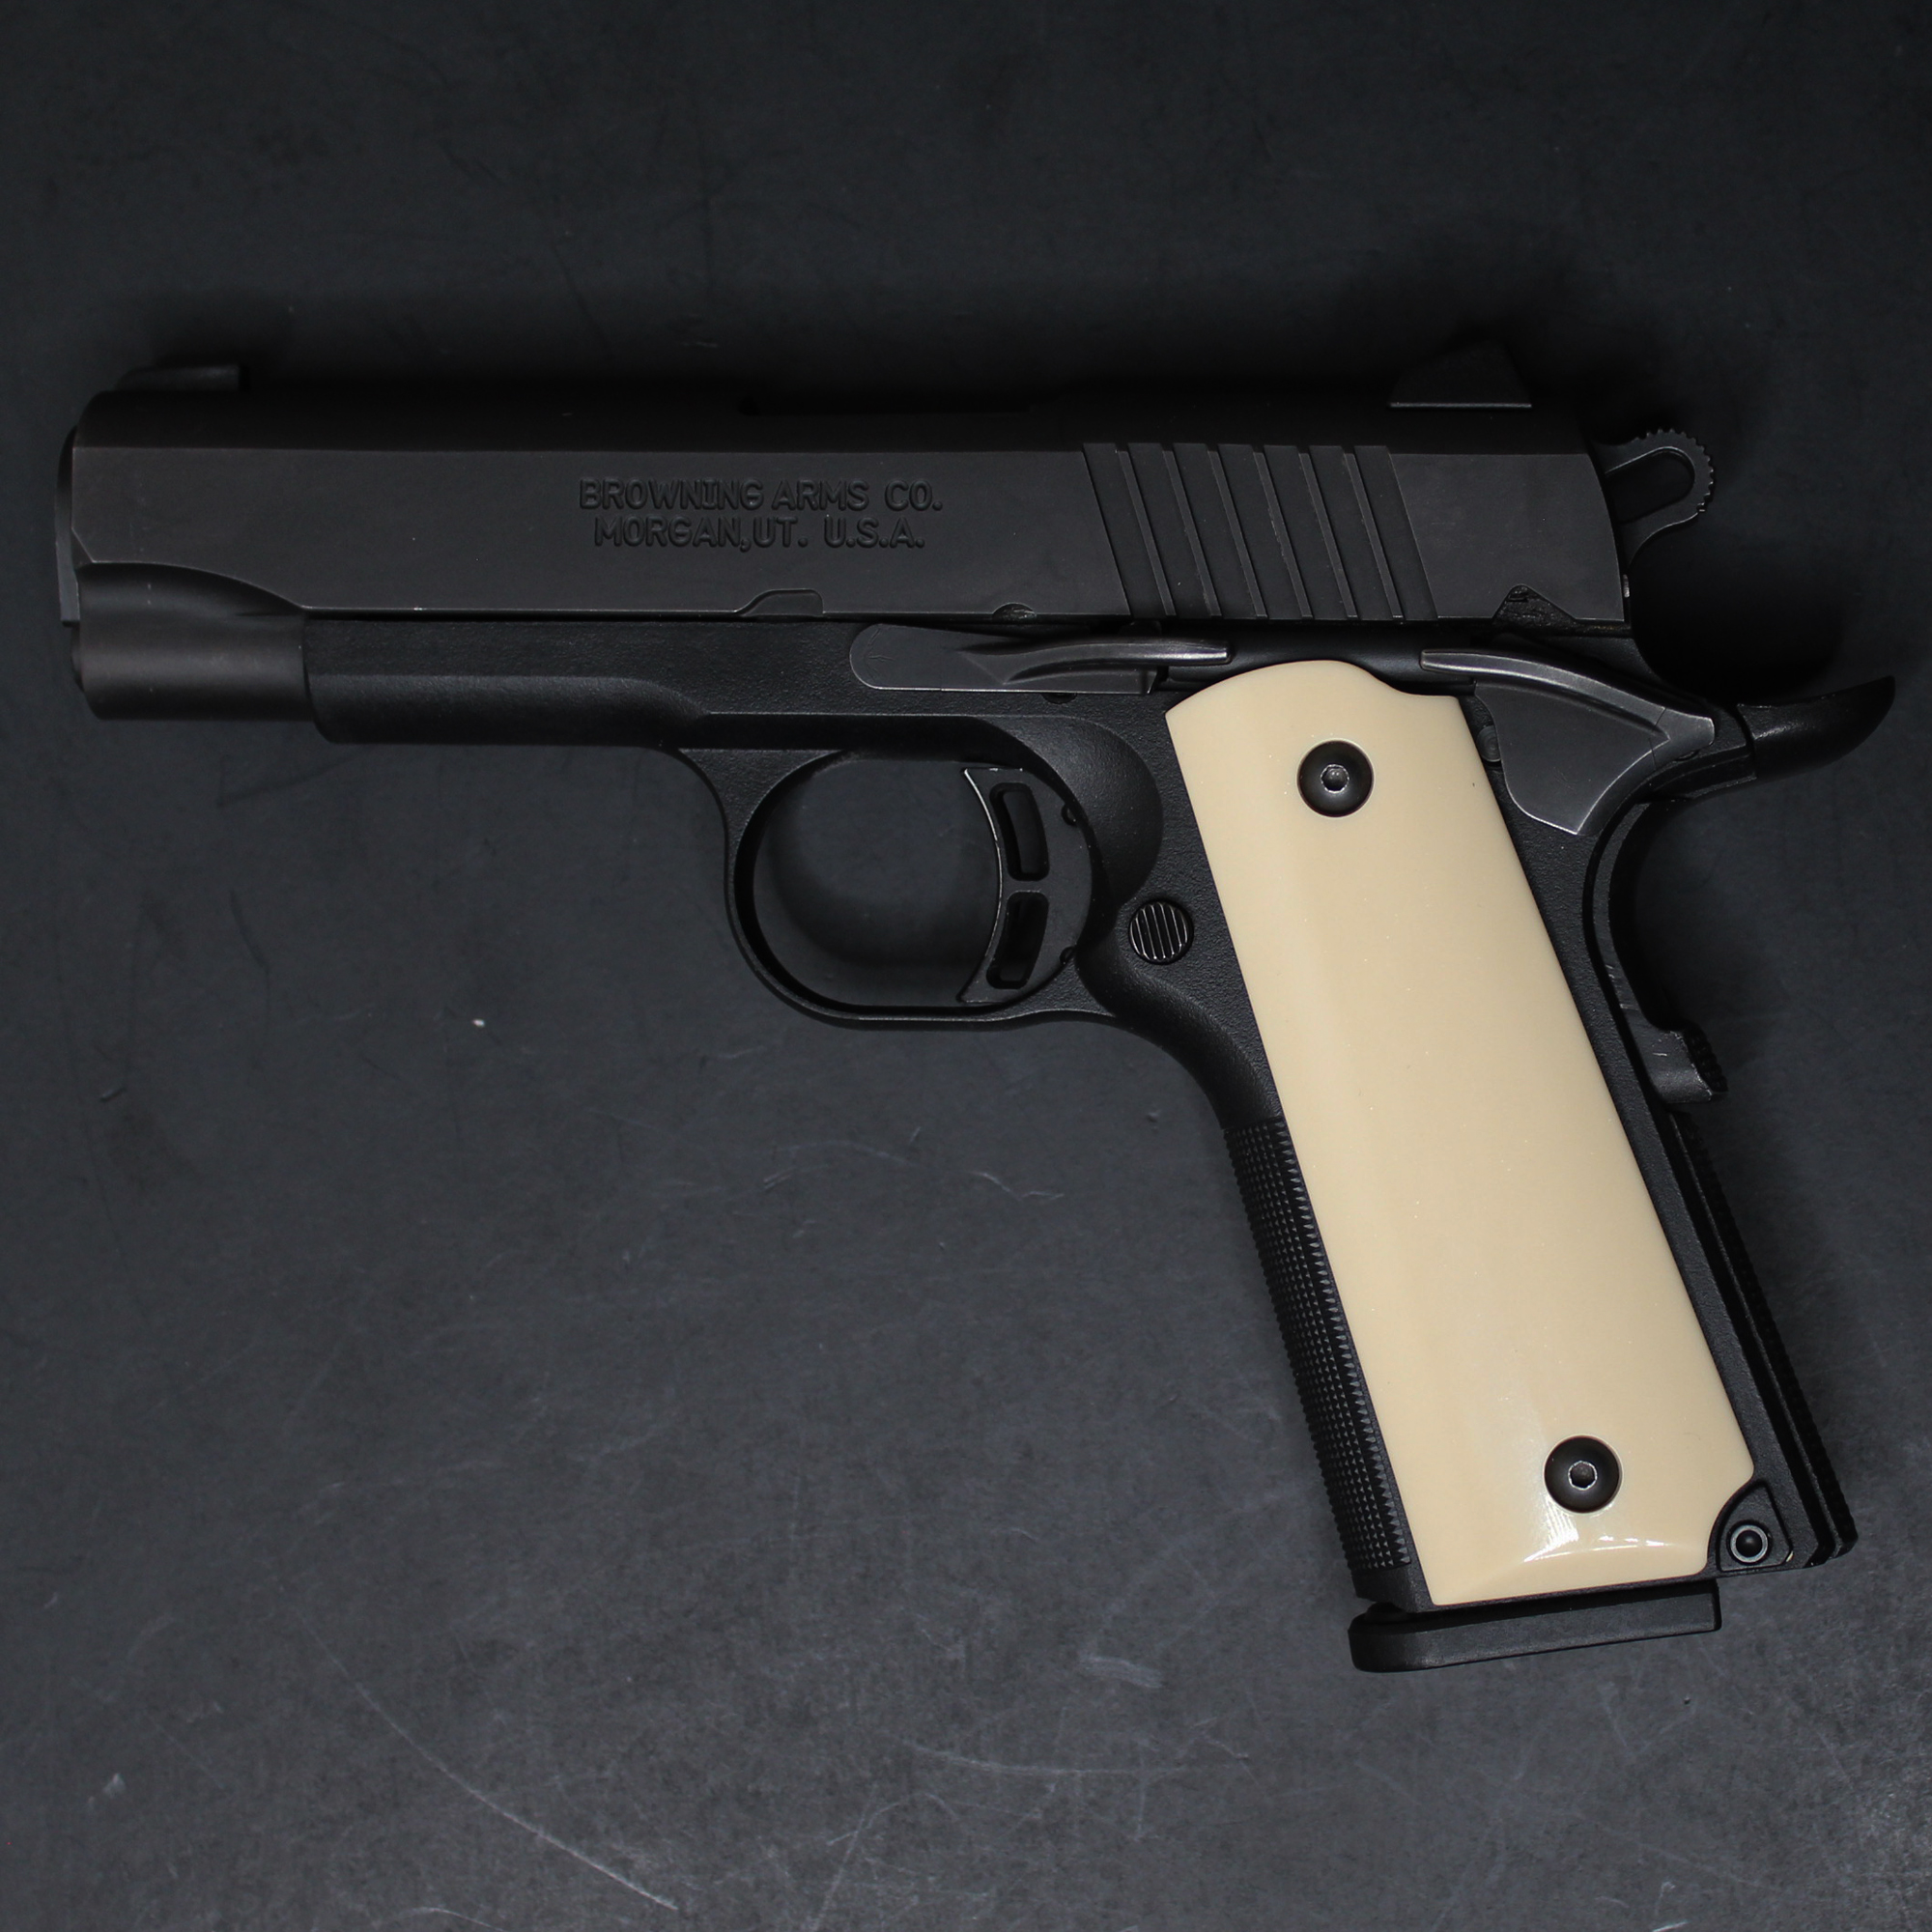 SMOOTH Browning 1911-22 380 1911a1 Black Label Polished Grips Details about  /DURAGRIPS